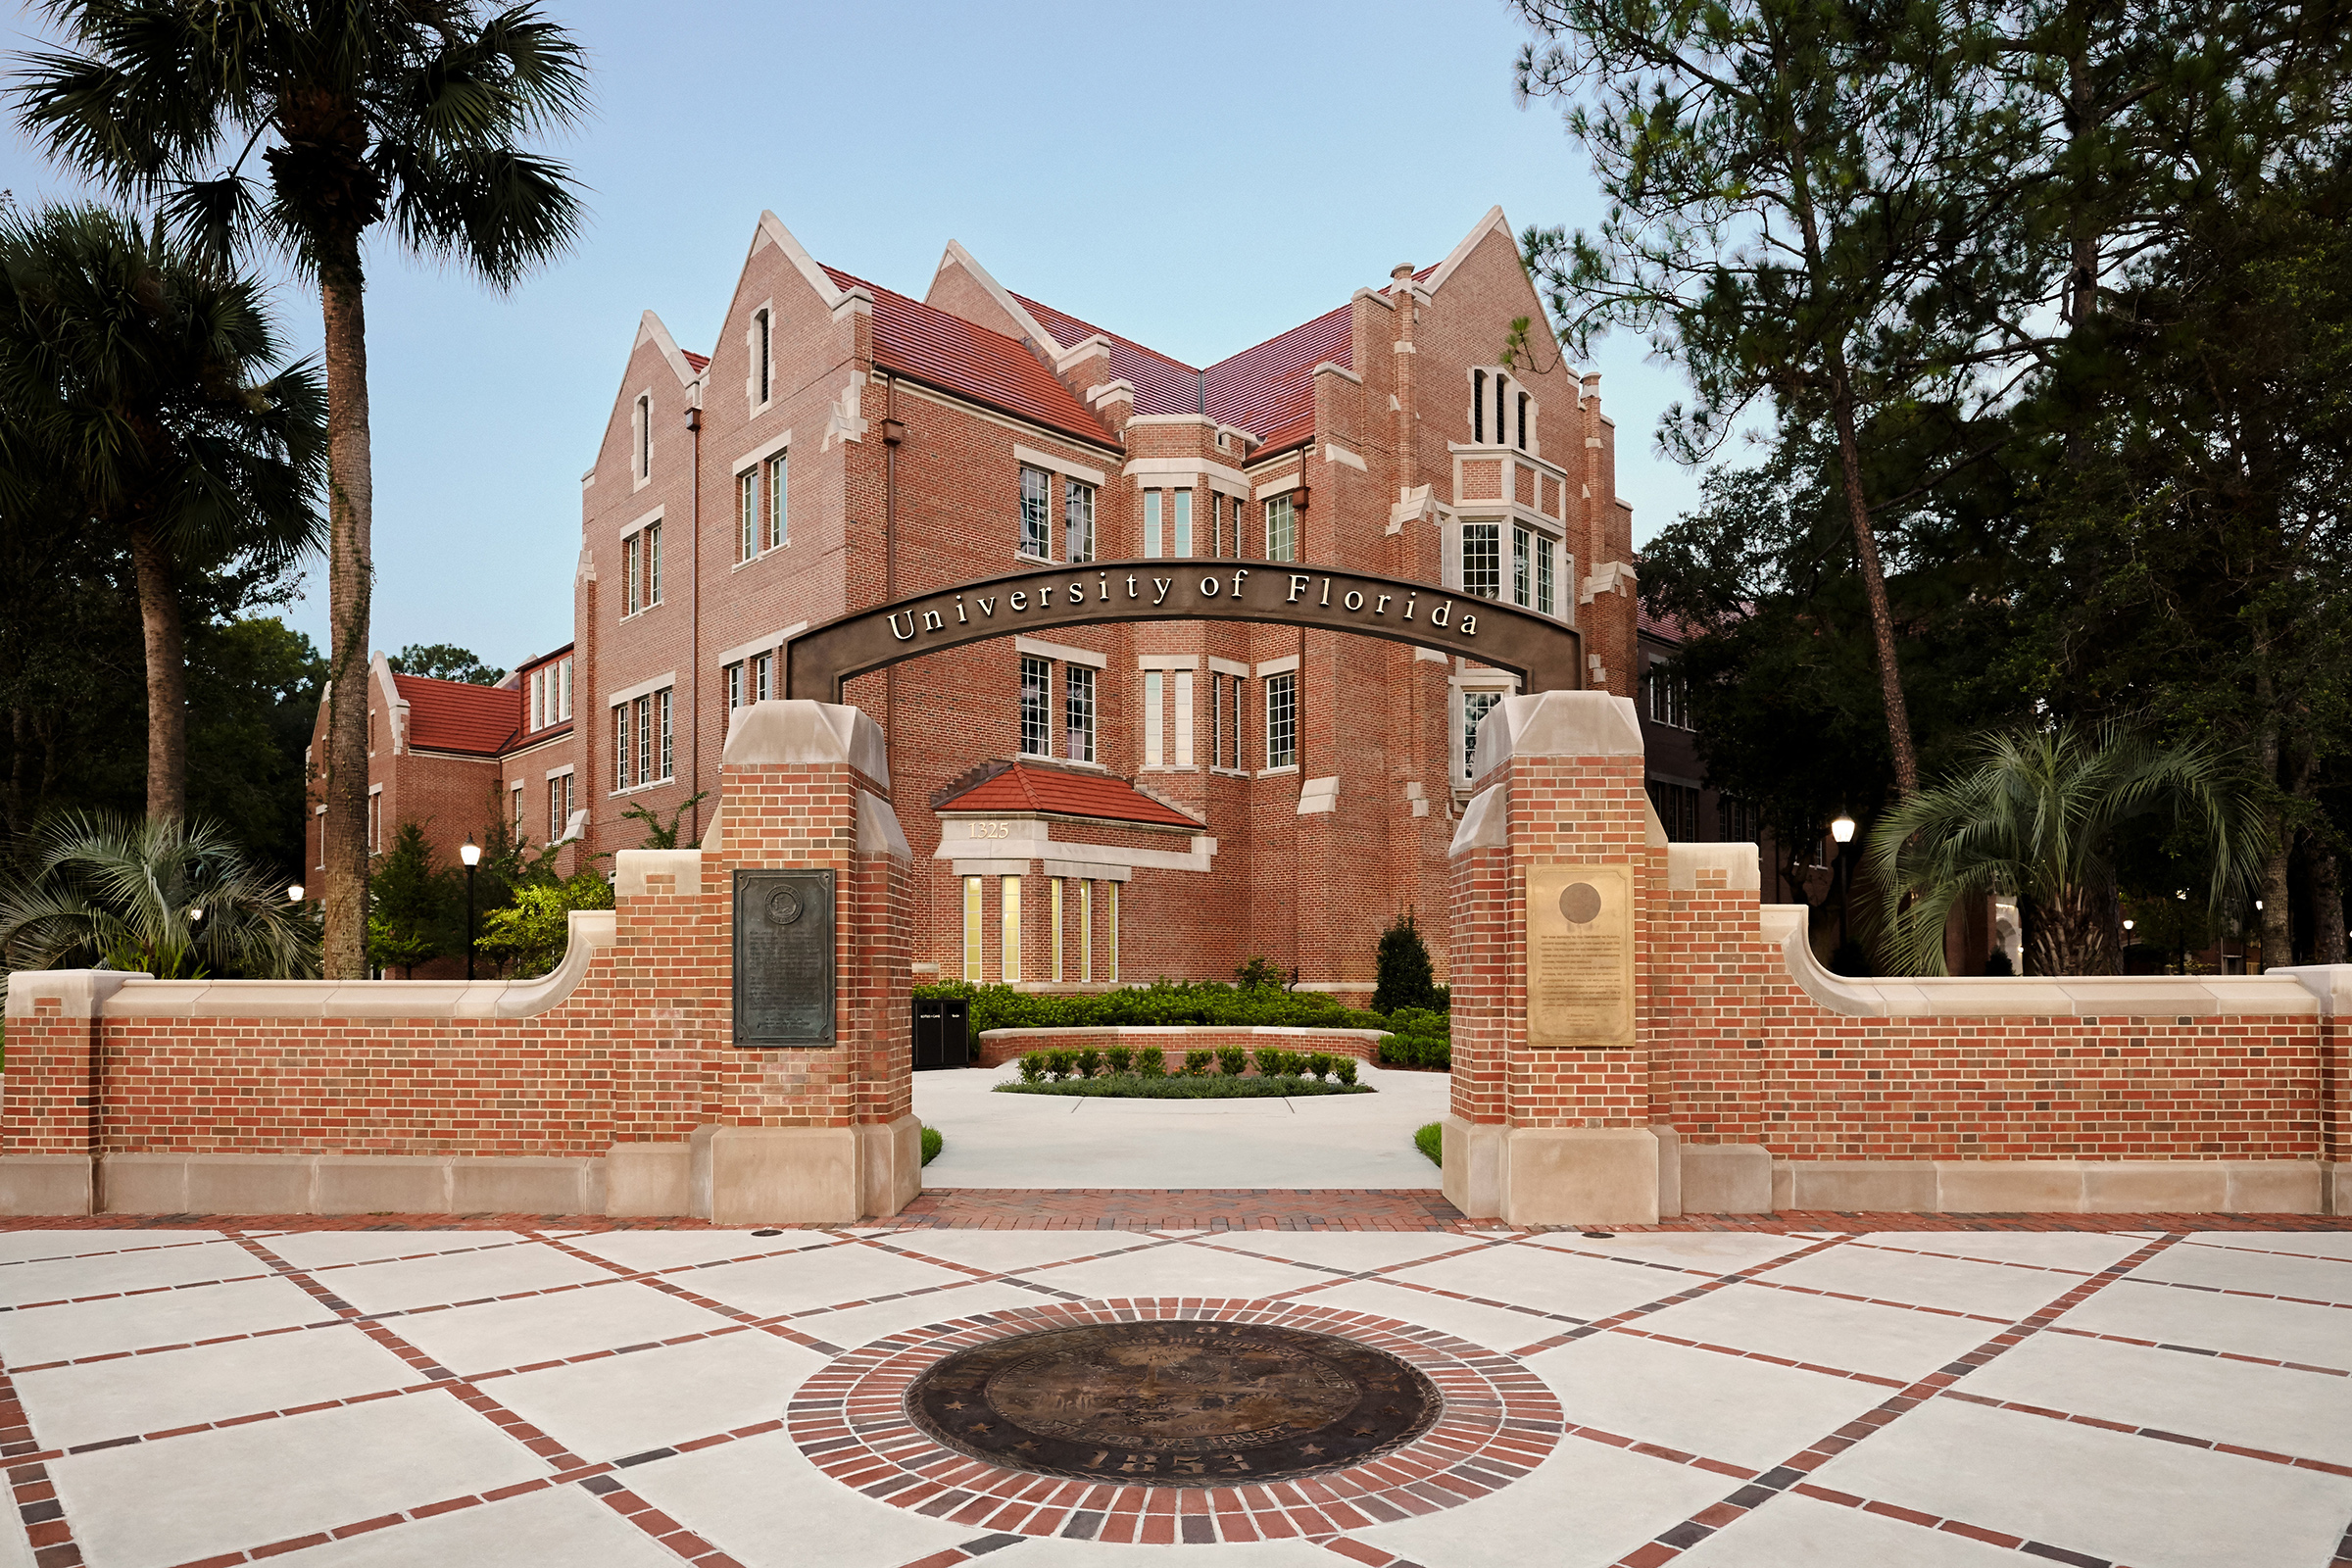 University of Florida Picture